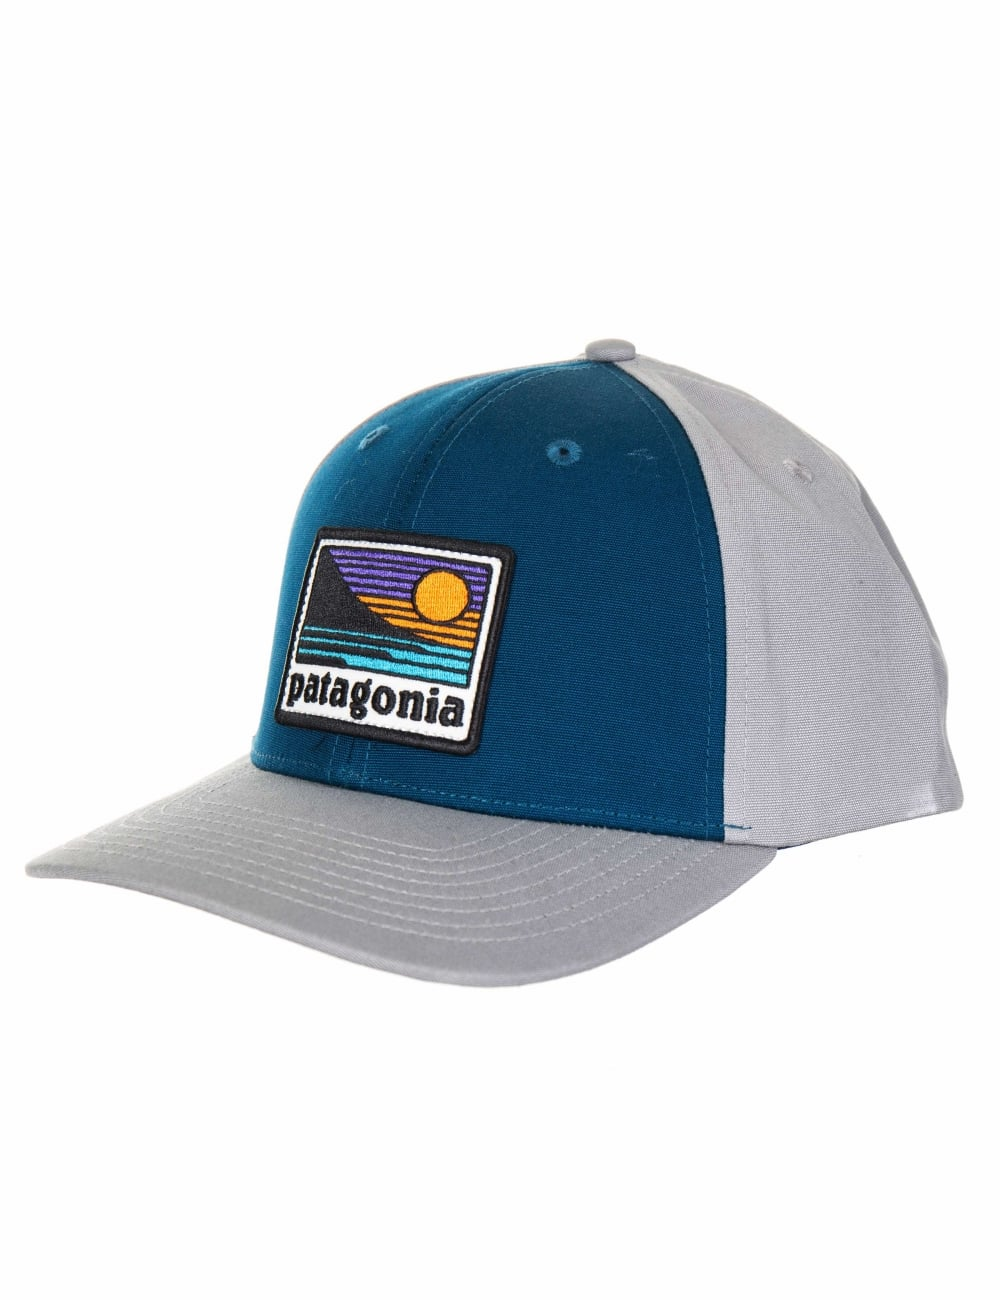 4b32b7c6f9 Patagonia Up   Out Roger That Hat - Big Sur Blue - Hat Shop from Fat ...